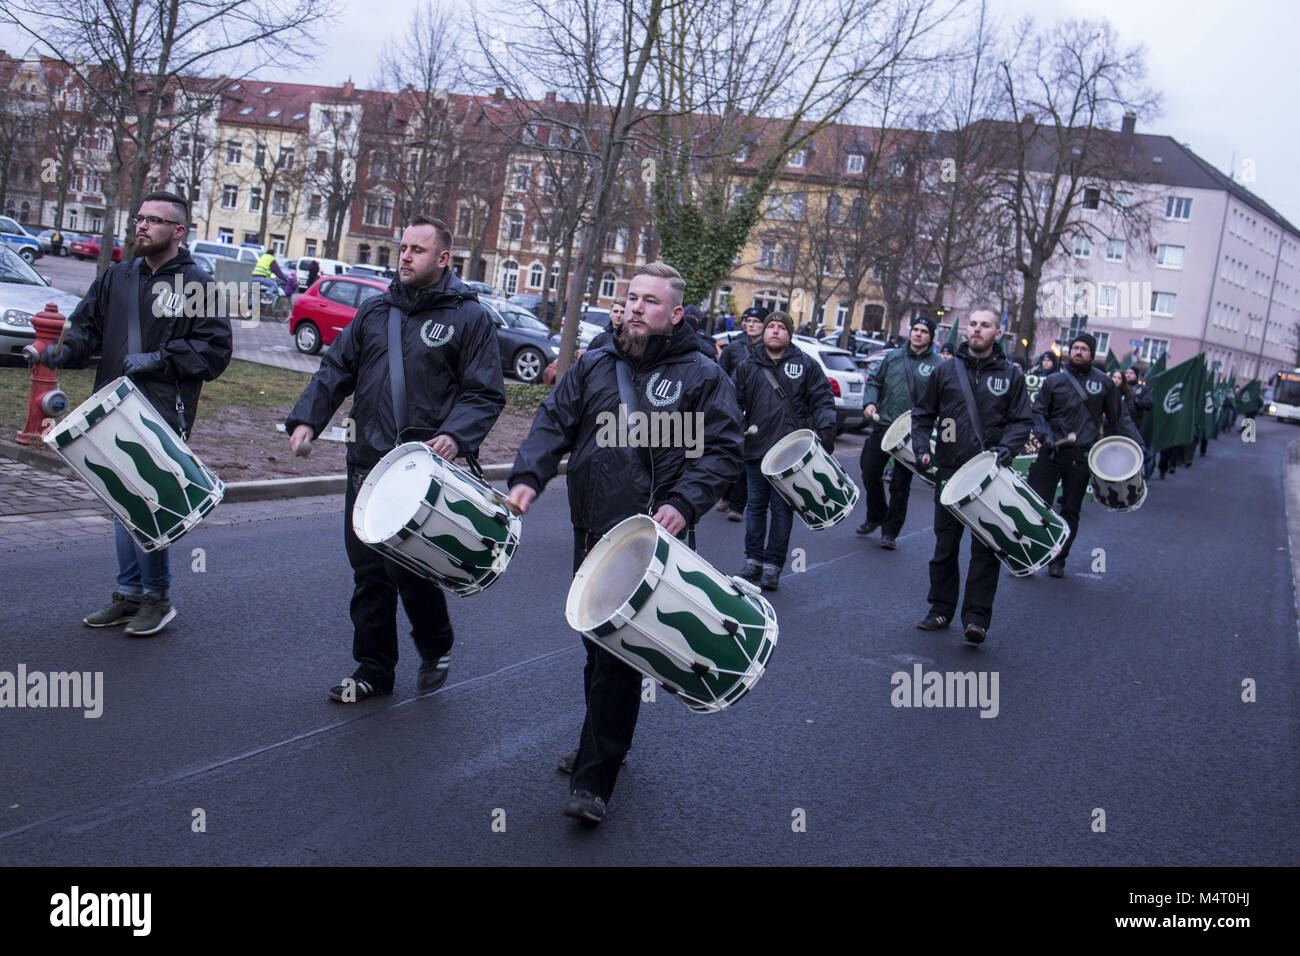 February 17, 2018 - Nordhausen, Thüringen, Germany - Torch march of the neo-Nazi party ''The - Stock Image